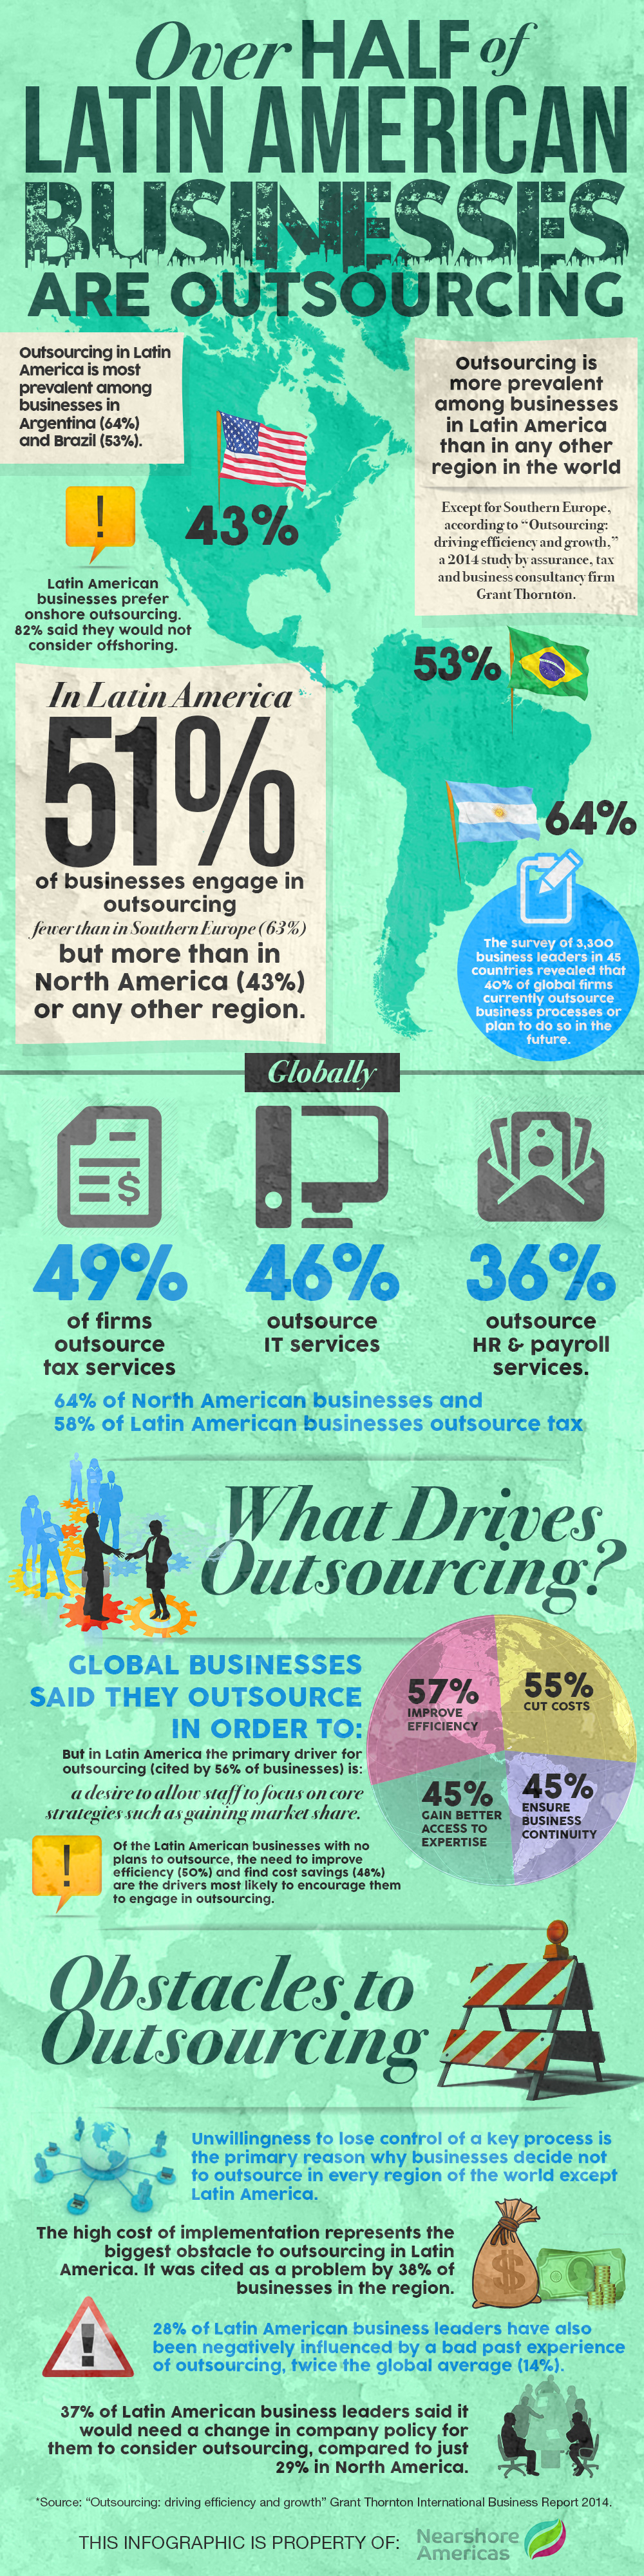 Infographic: Over Half of Latin American Businesses Are Outsourcing